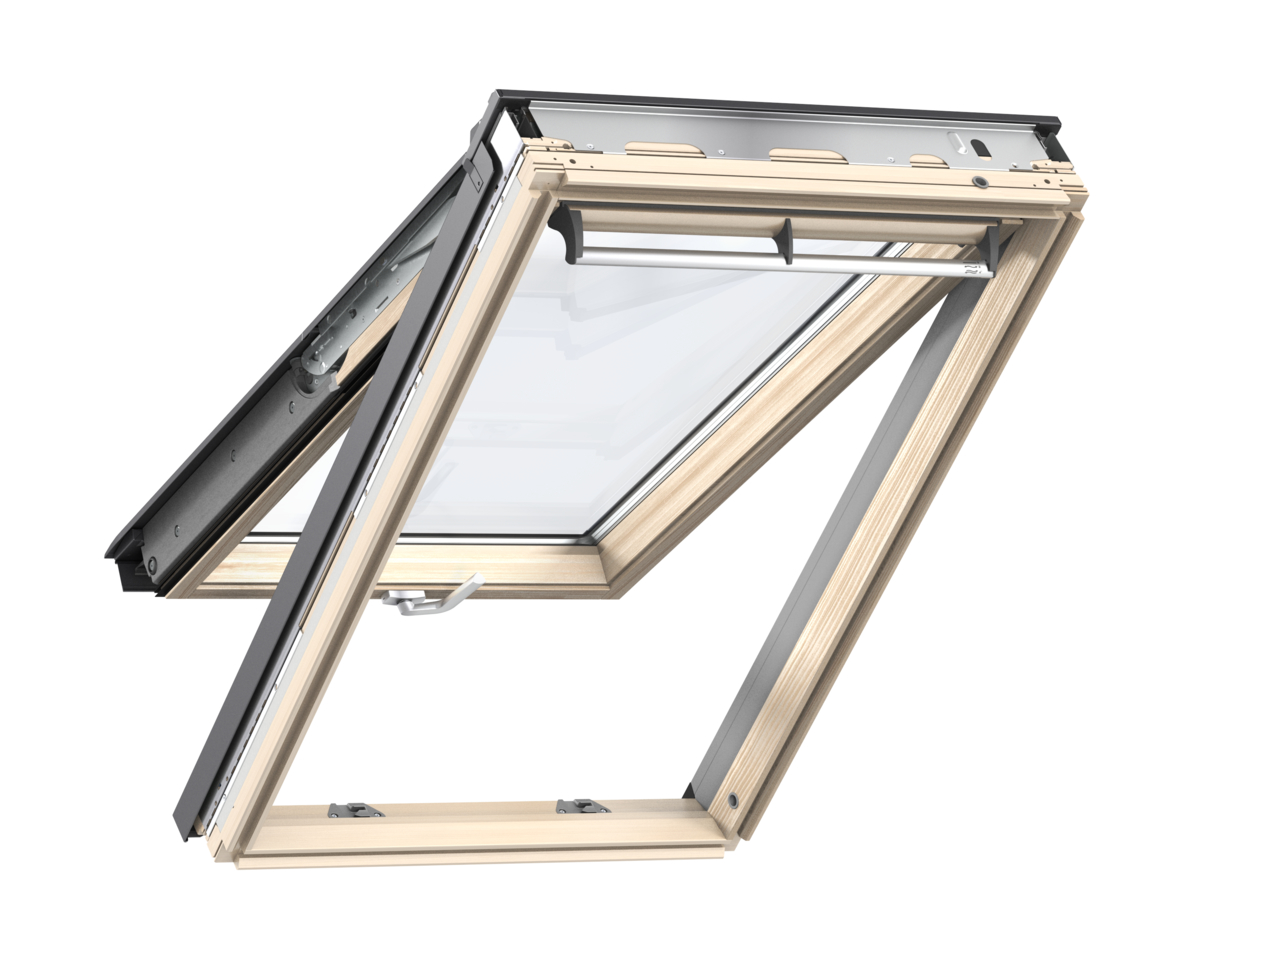 Velux GPL UK04 1340 x 980mm Top Hung Standard 70Pane Roof Window - Pine